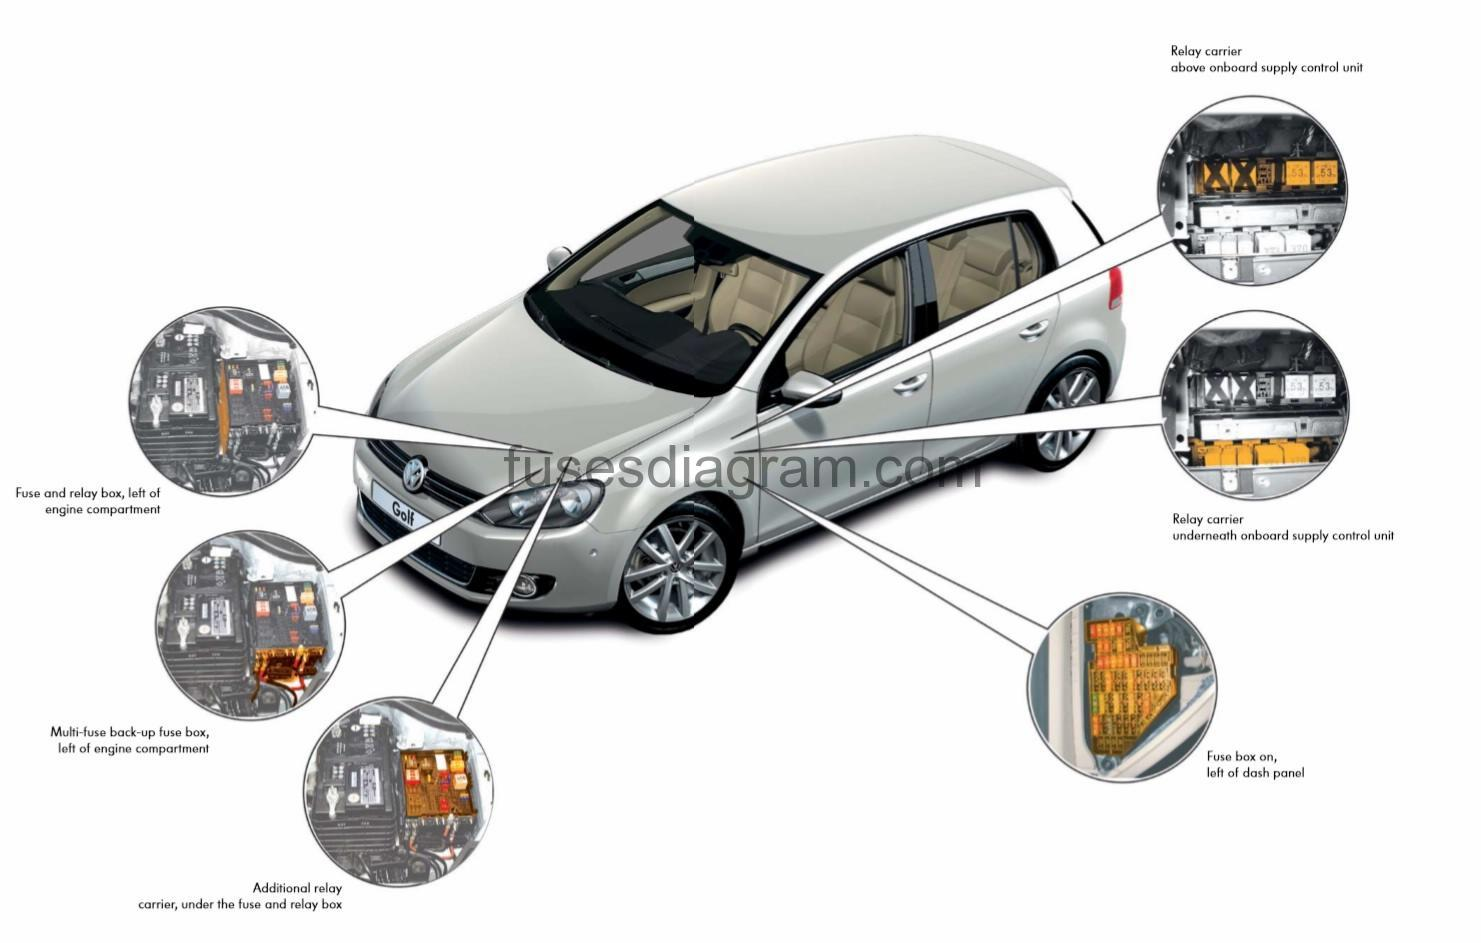 2007 City Golf Fuse Box Diagram Trusted Wiring Vw Engine Compartment 2006 Mk6 Diy Enthusiasts Diagrams U2022